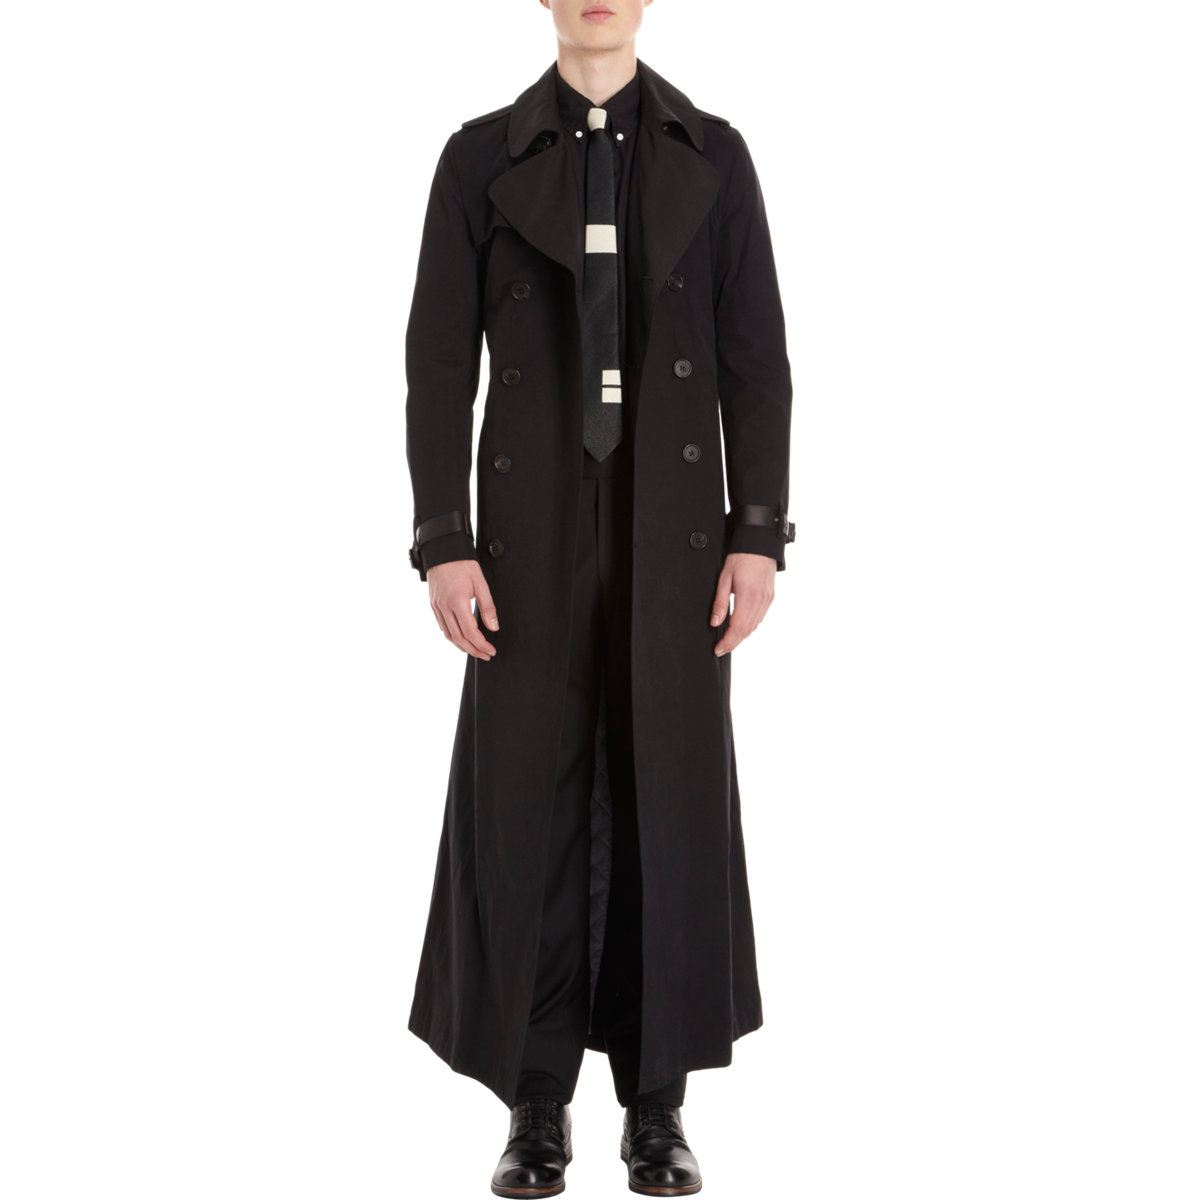 Find great deals on eBay for Mens Long Black Trench Coat in Men's Coats And Jackets. Shop with confidence.